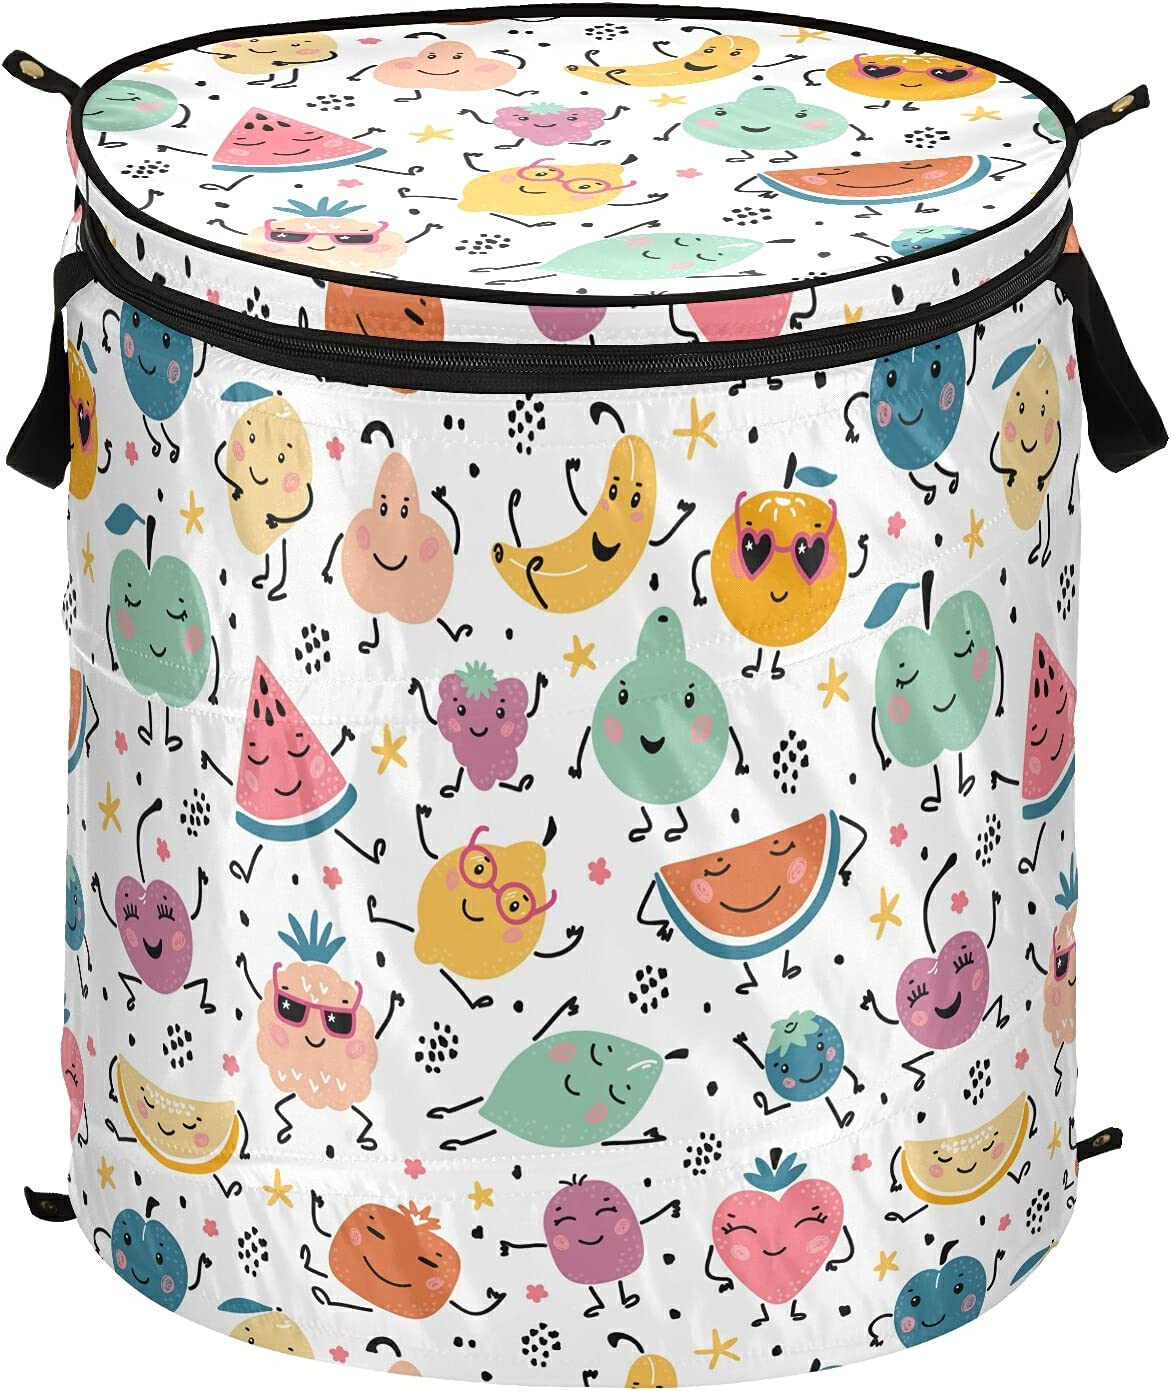 ALAZA 50 High material L Pop-up Laundry Product Hamper Summer Fruits Kawaii and Cute